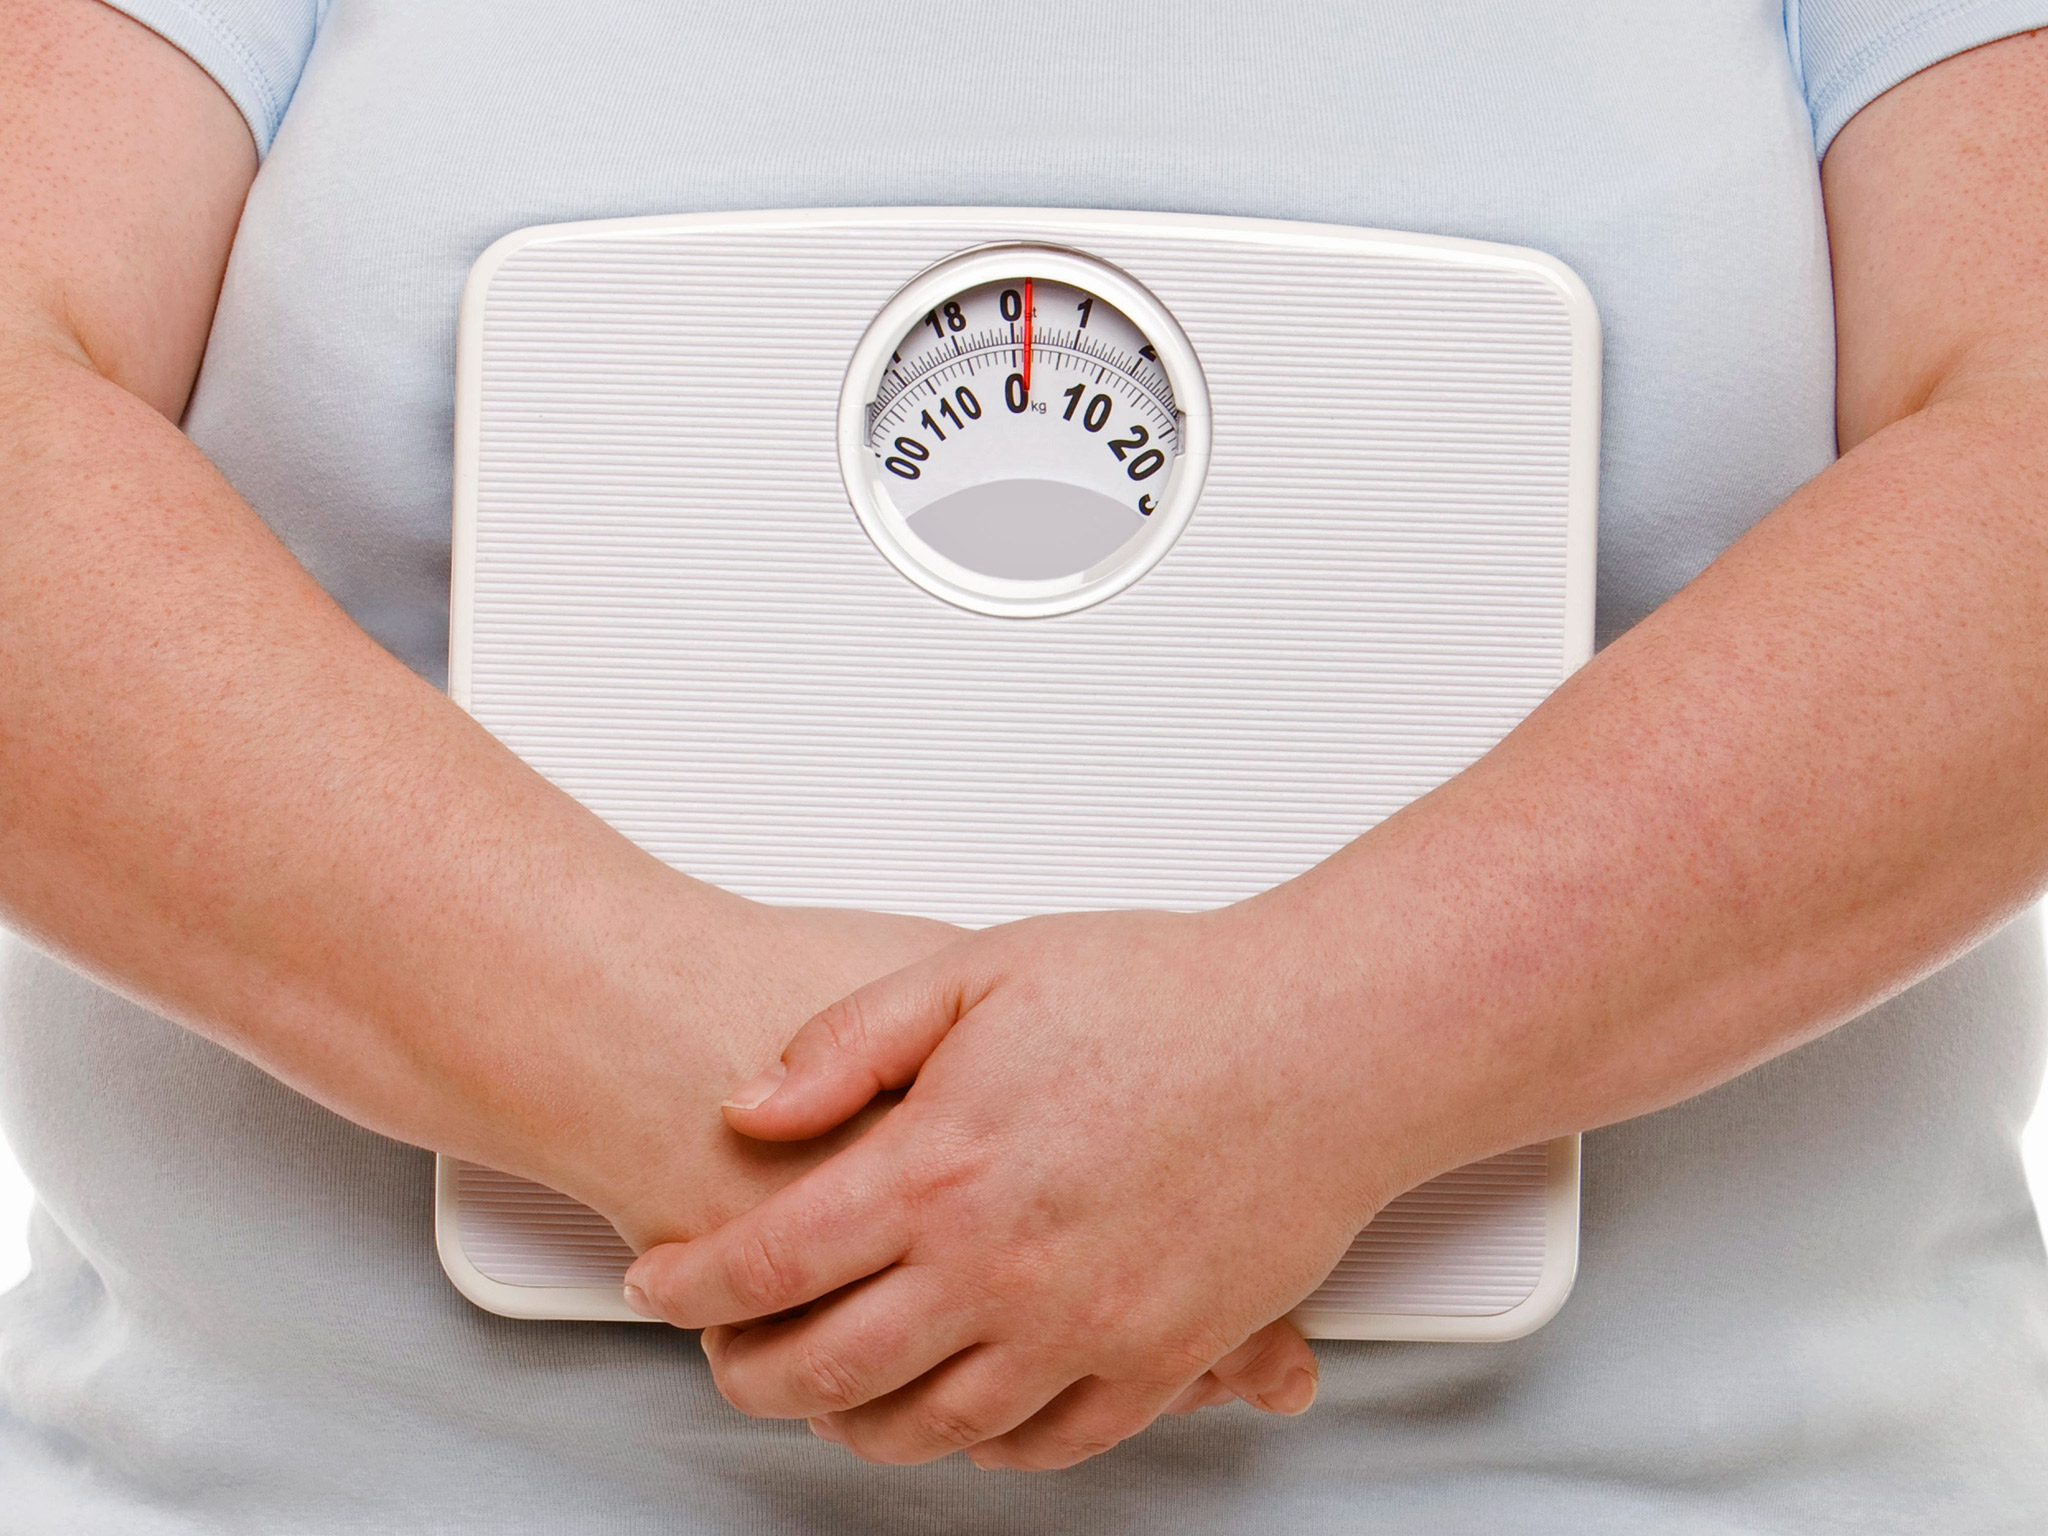 web-obesity-rf-getty-c